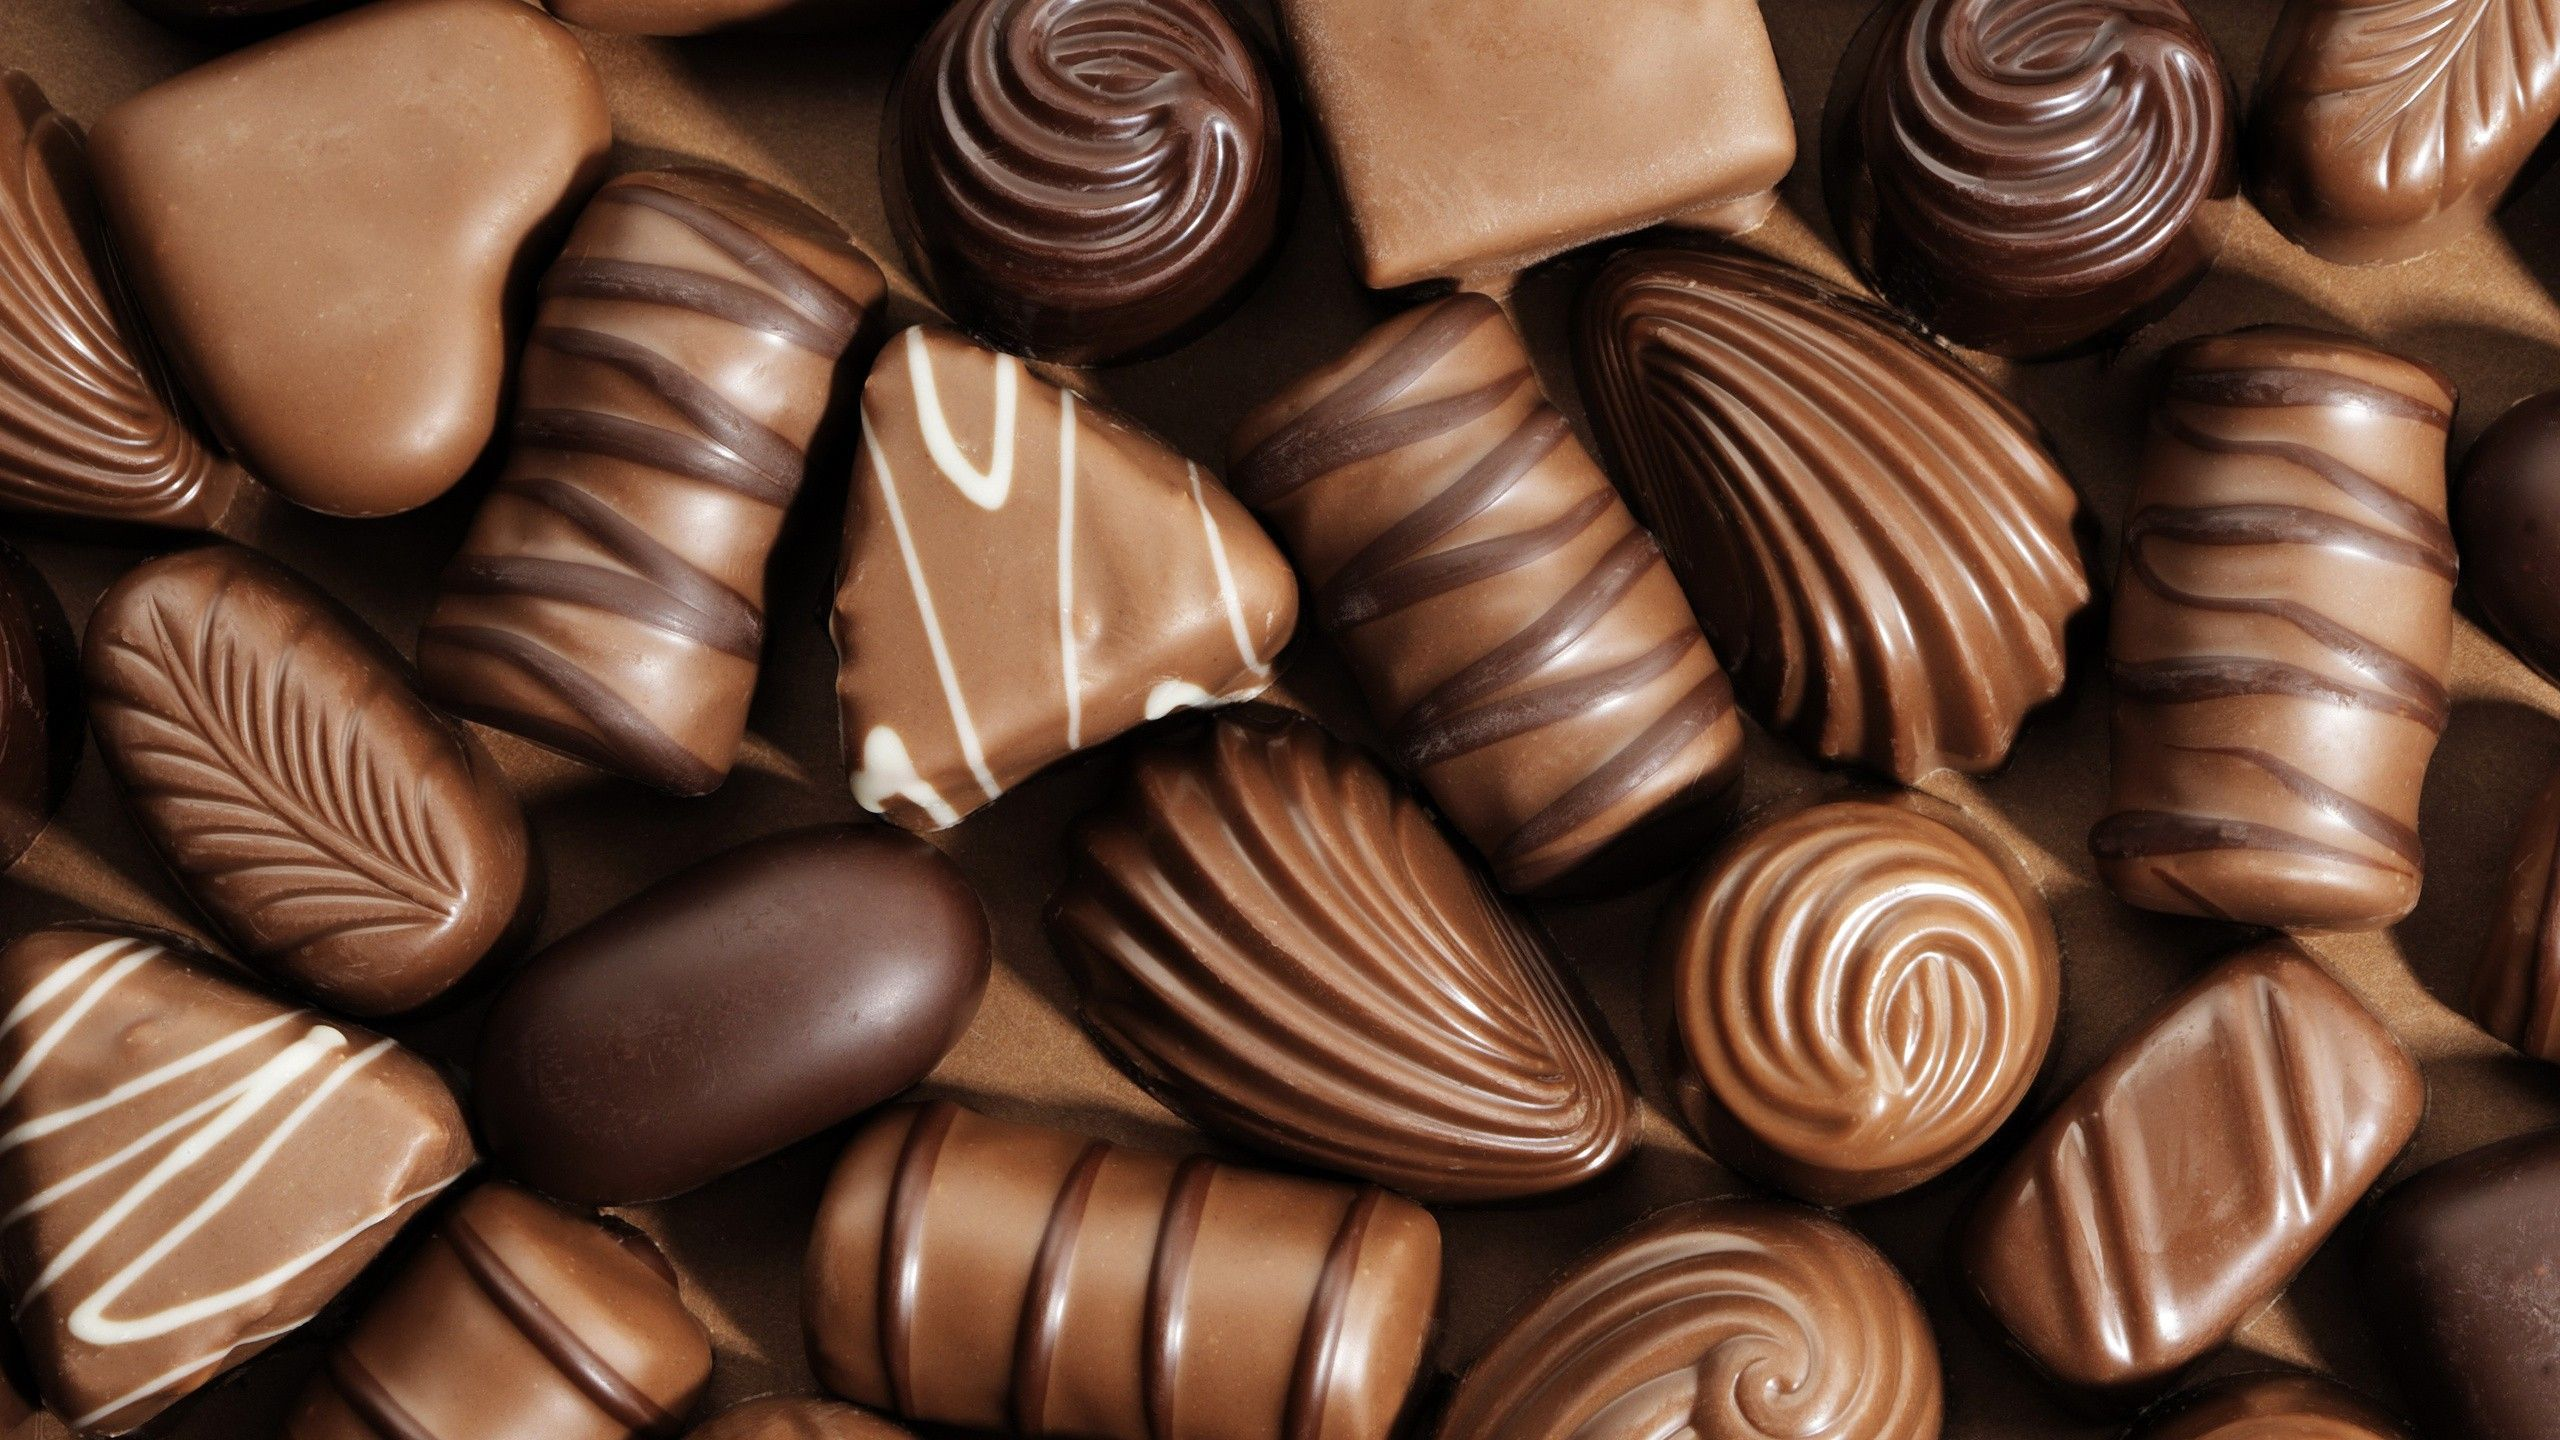 Beautiful chocolates wallpapers and images - wallpapers, pictures ...